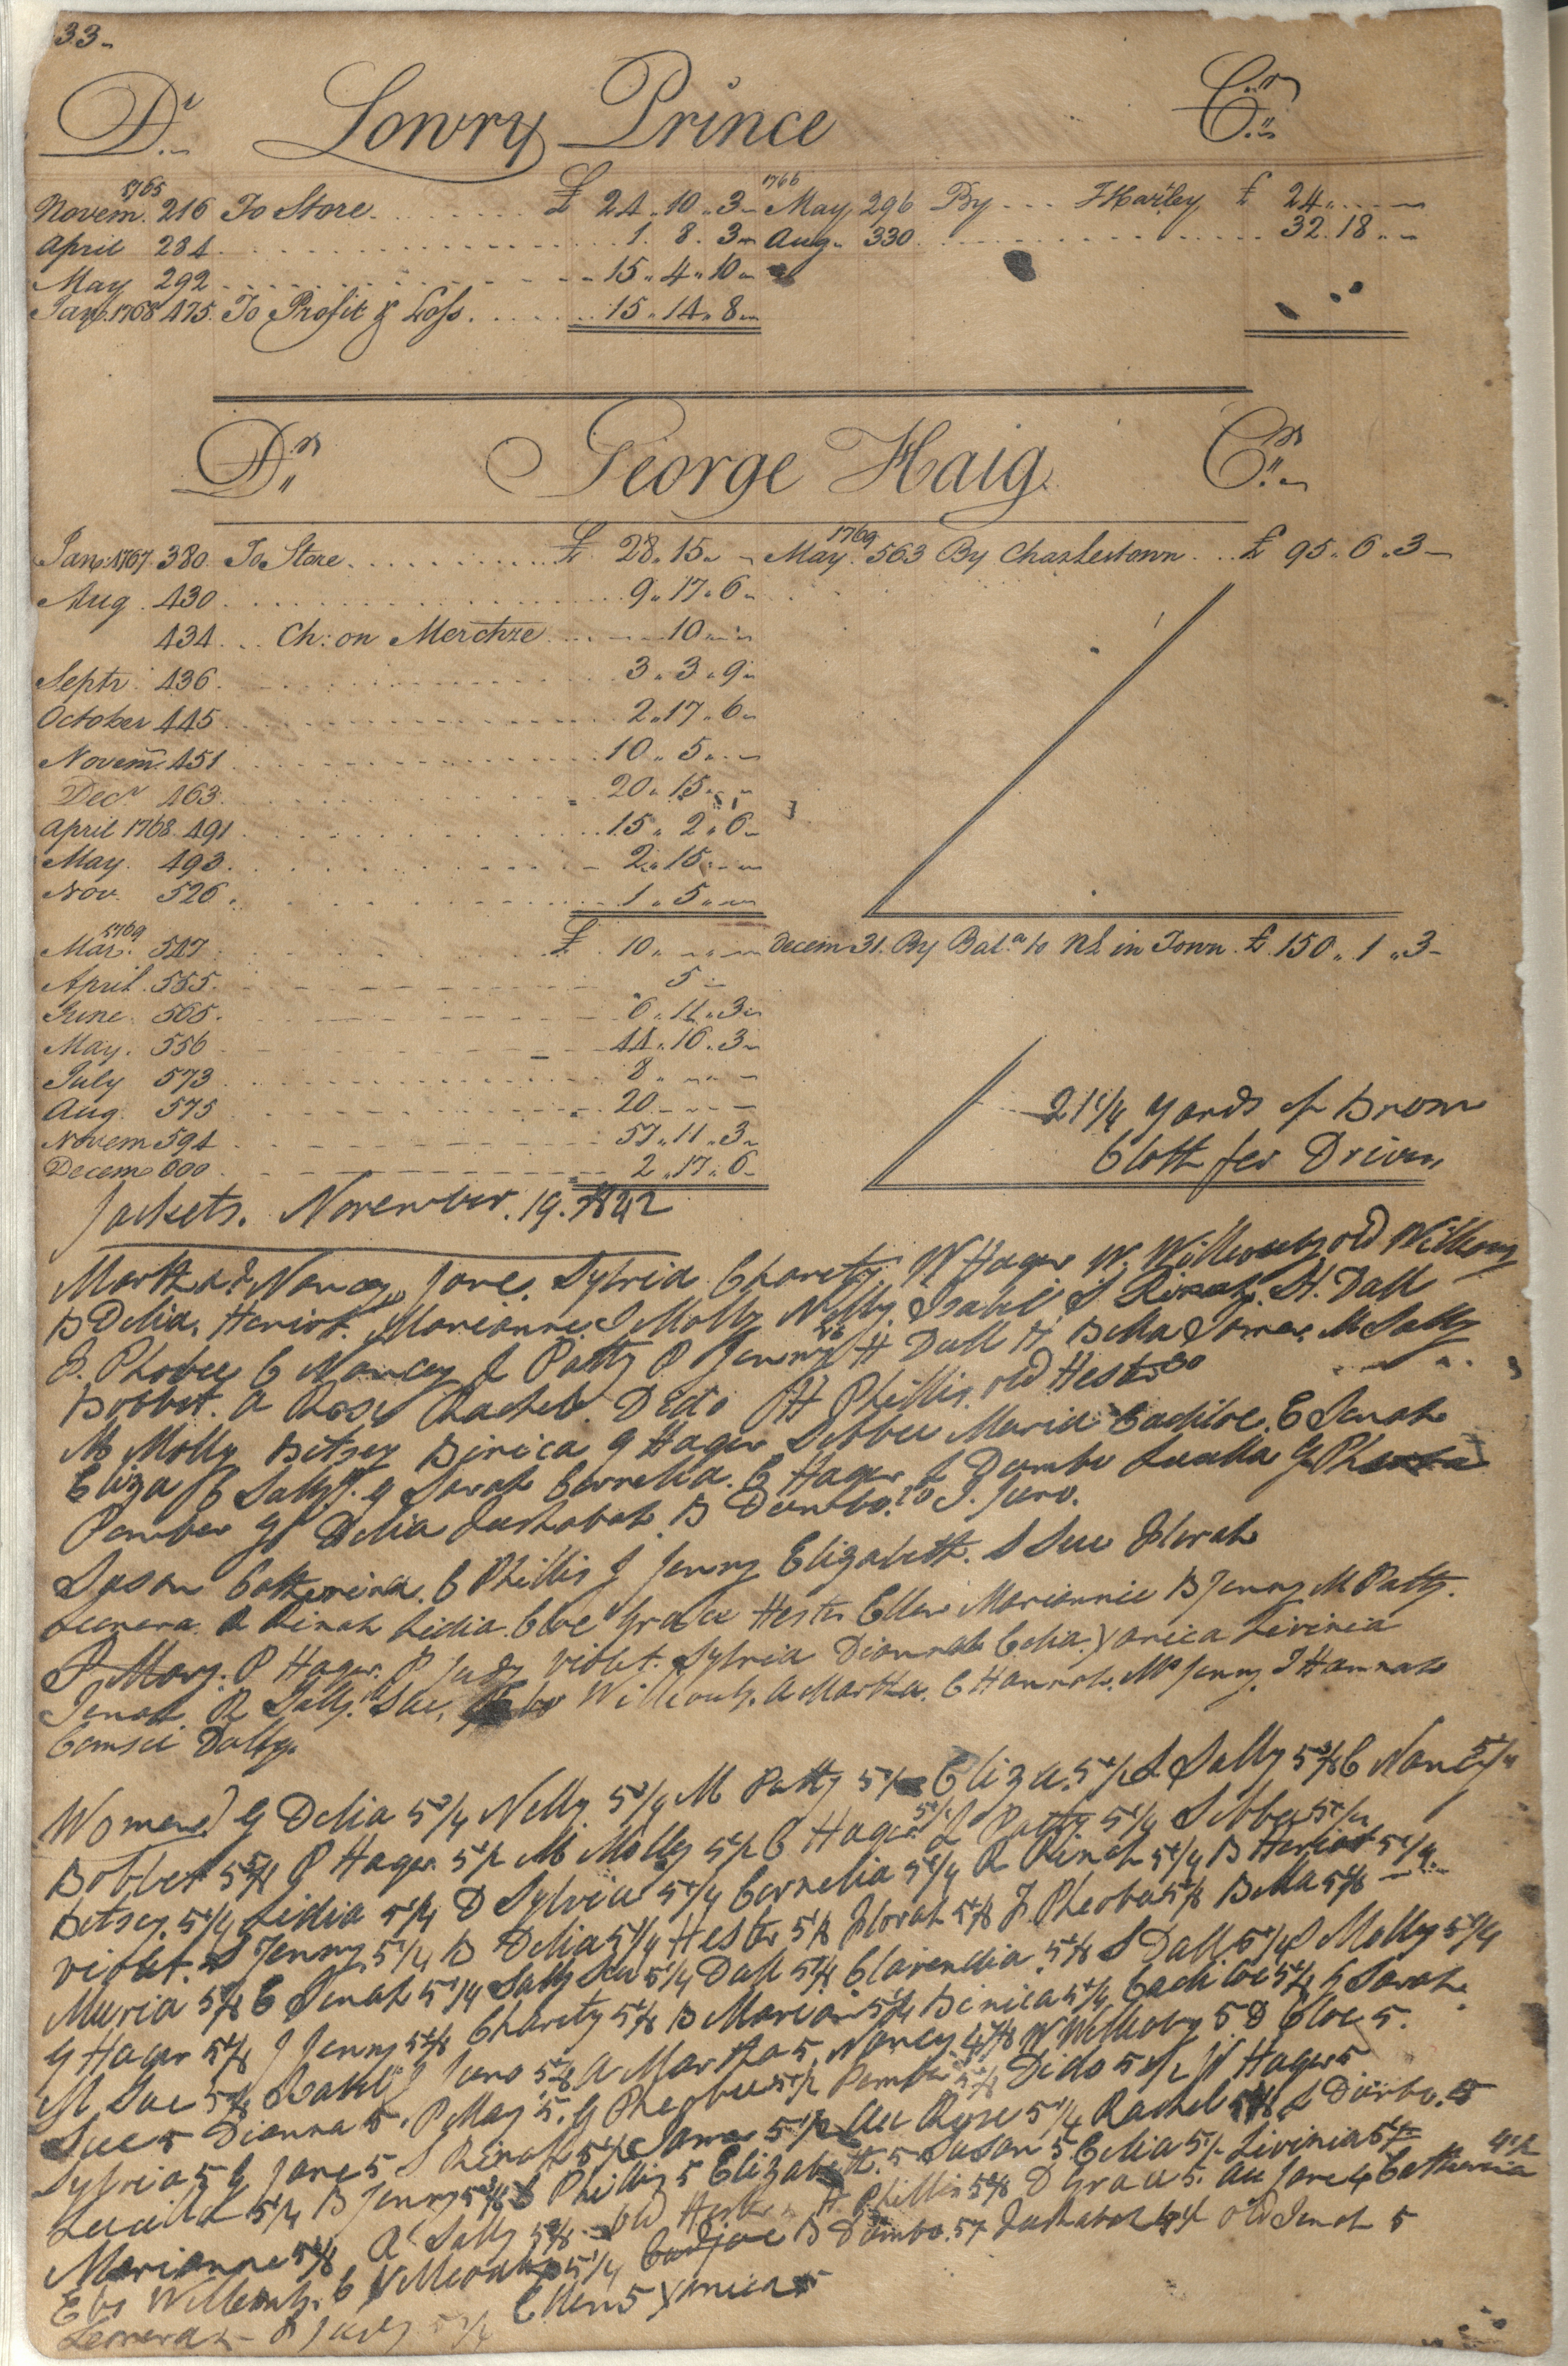 Plowden Weston's Business Ledger, page 233